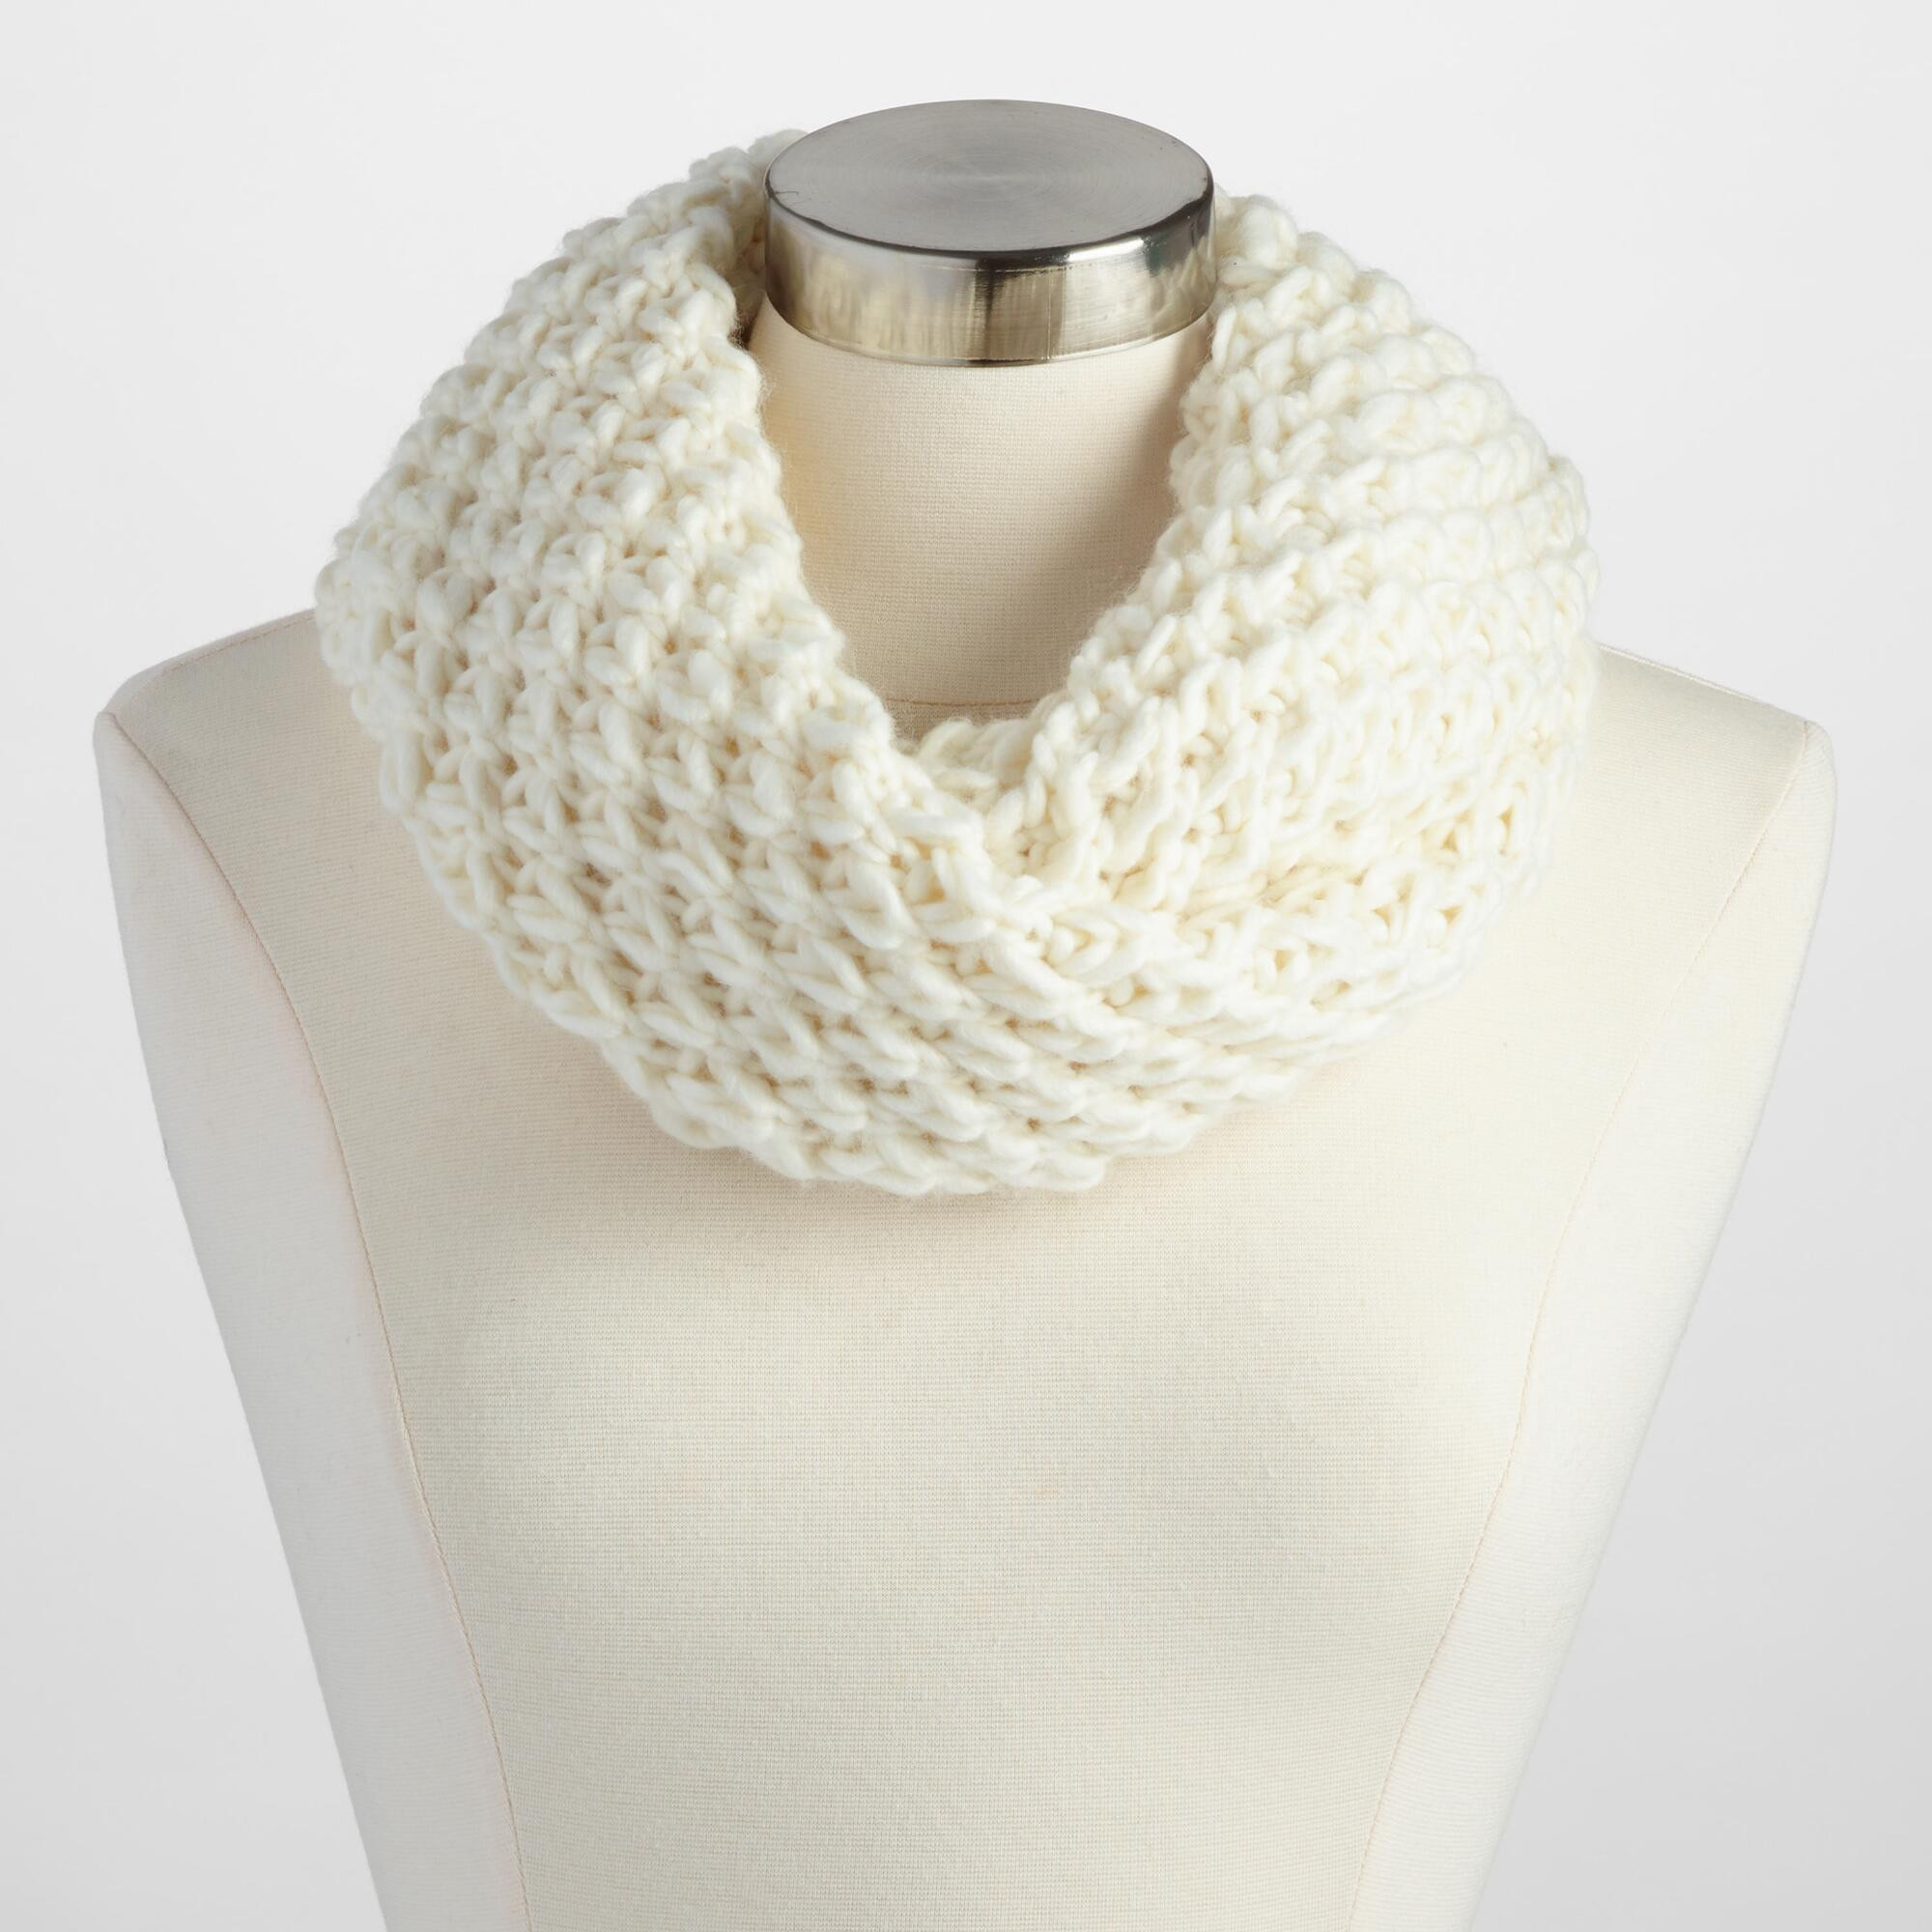 Knit Infinity Scarf Awesome Ivory Chunky Knit Infinity Scarf Of Wonderful 49 Photos Knit Infinity Scarf